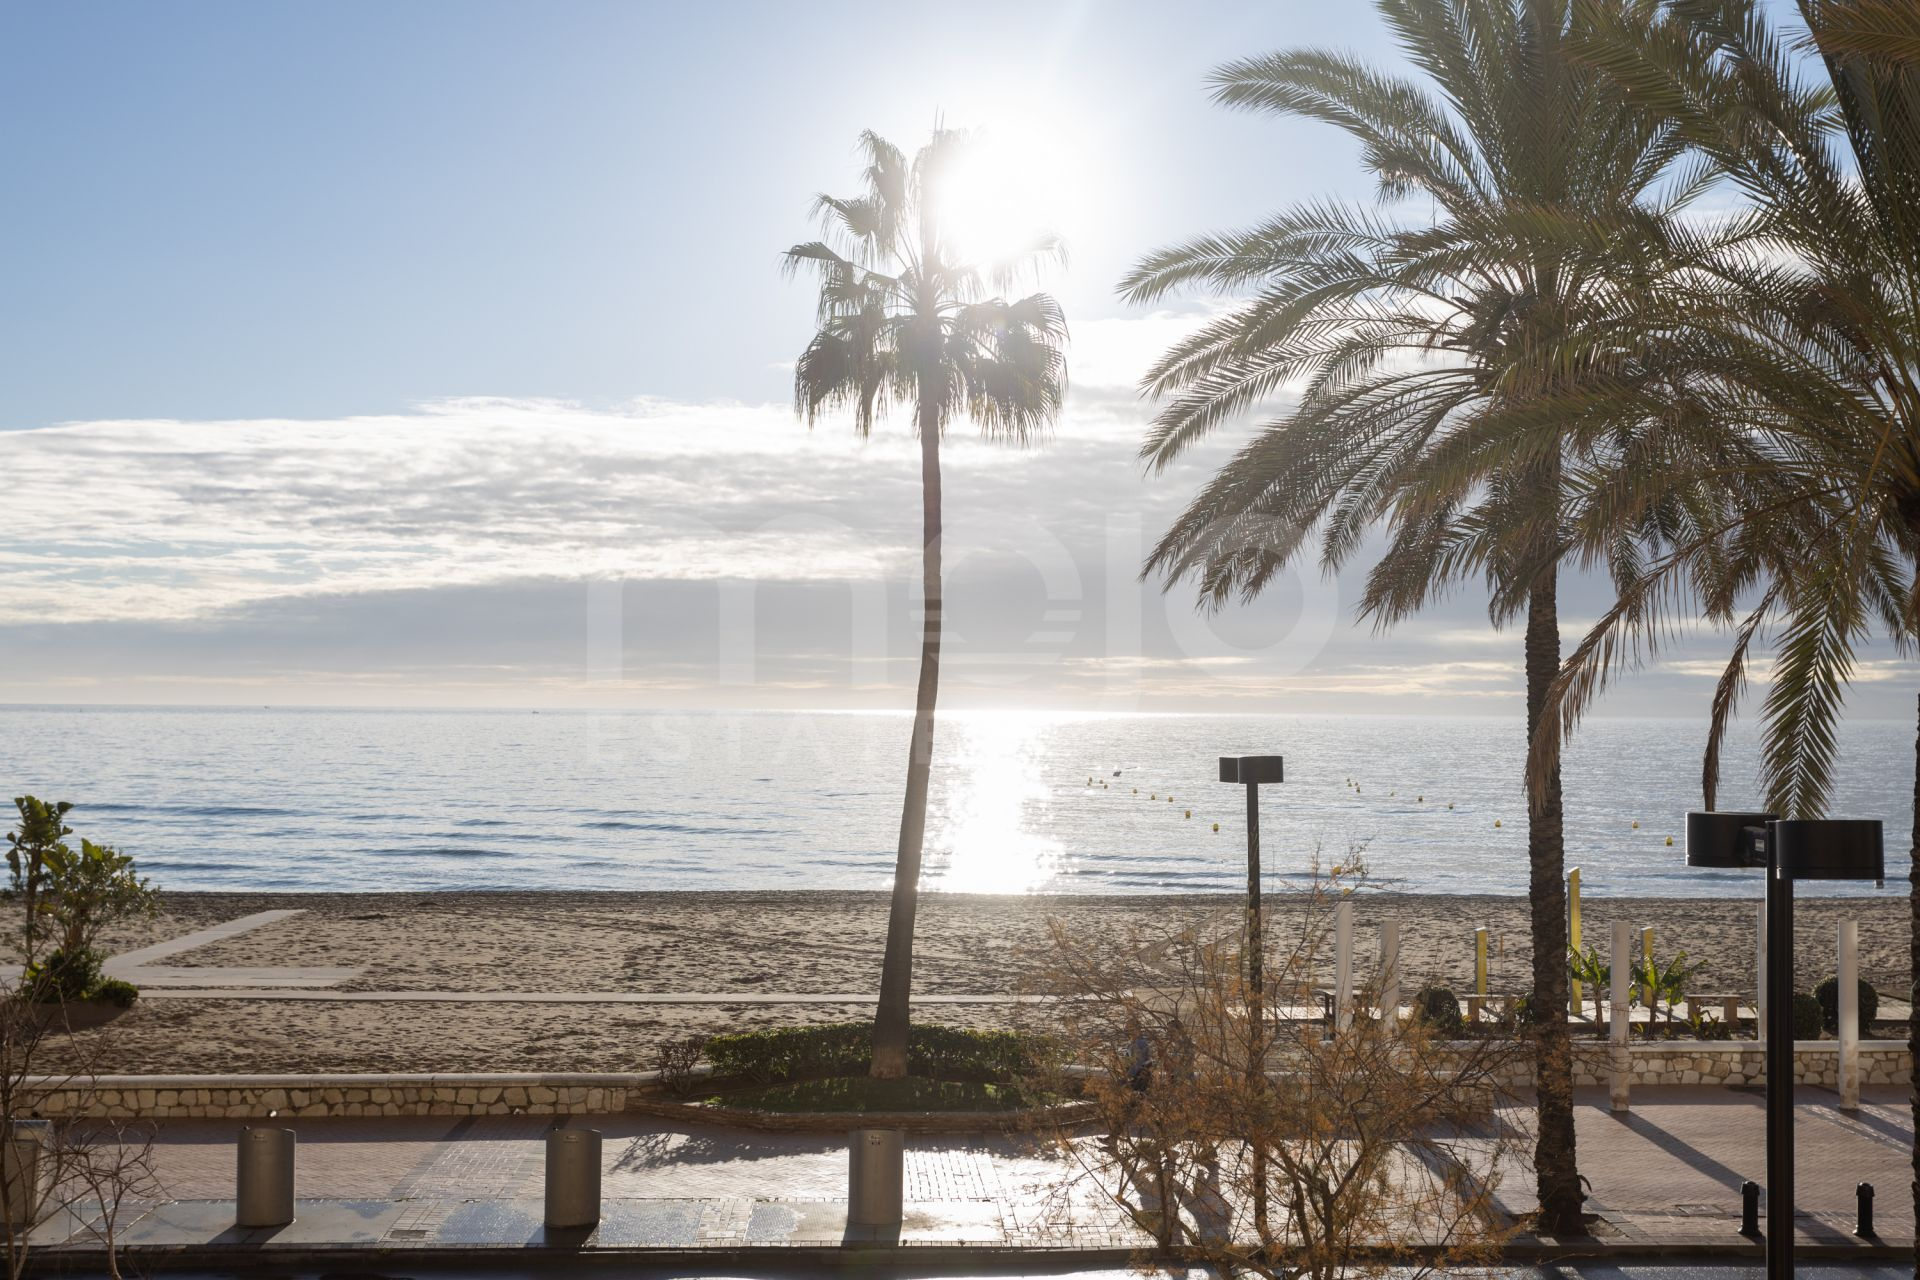 Front line beach apartment located within an excellent gated community in Torreblanca area, Fuengirola!